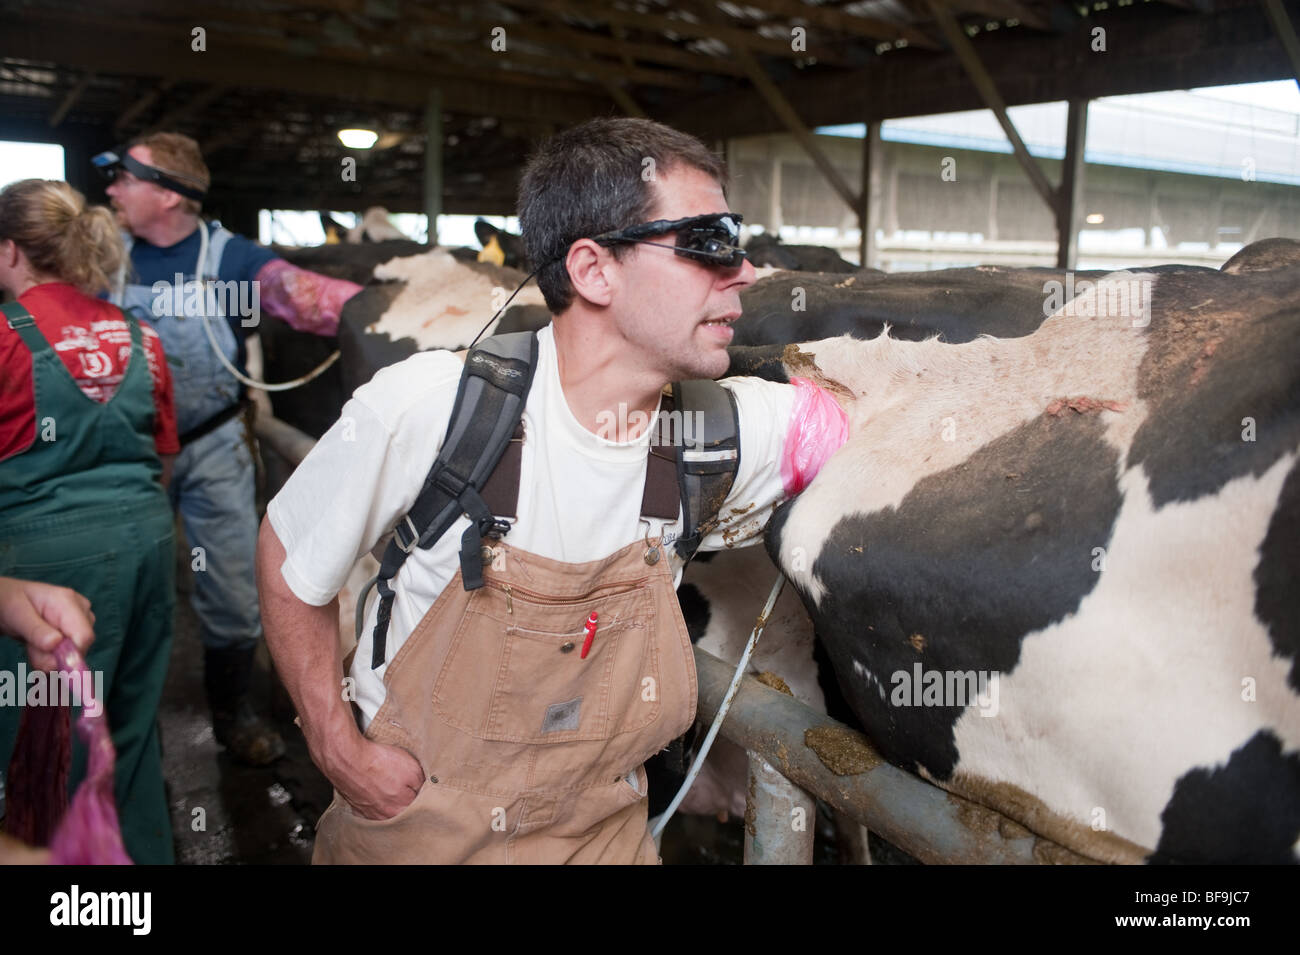 Vets Pregnancy Testing Dairy Cows Using Ultrasound